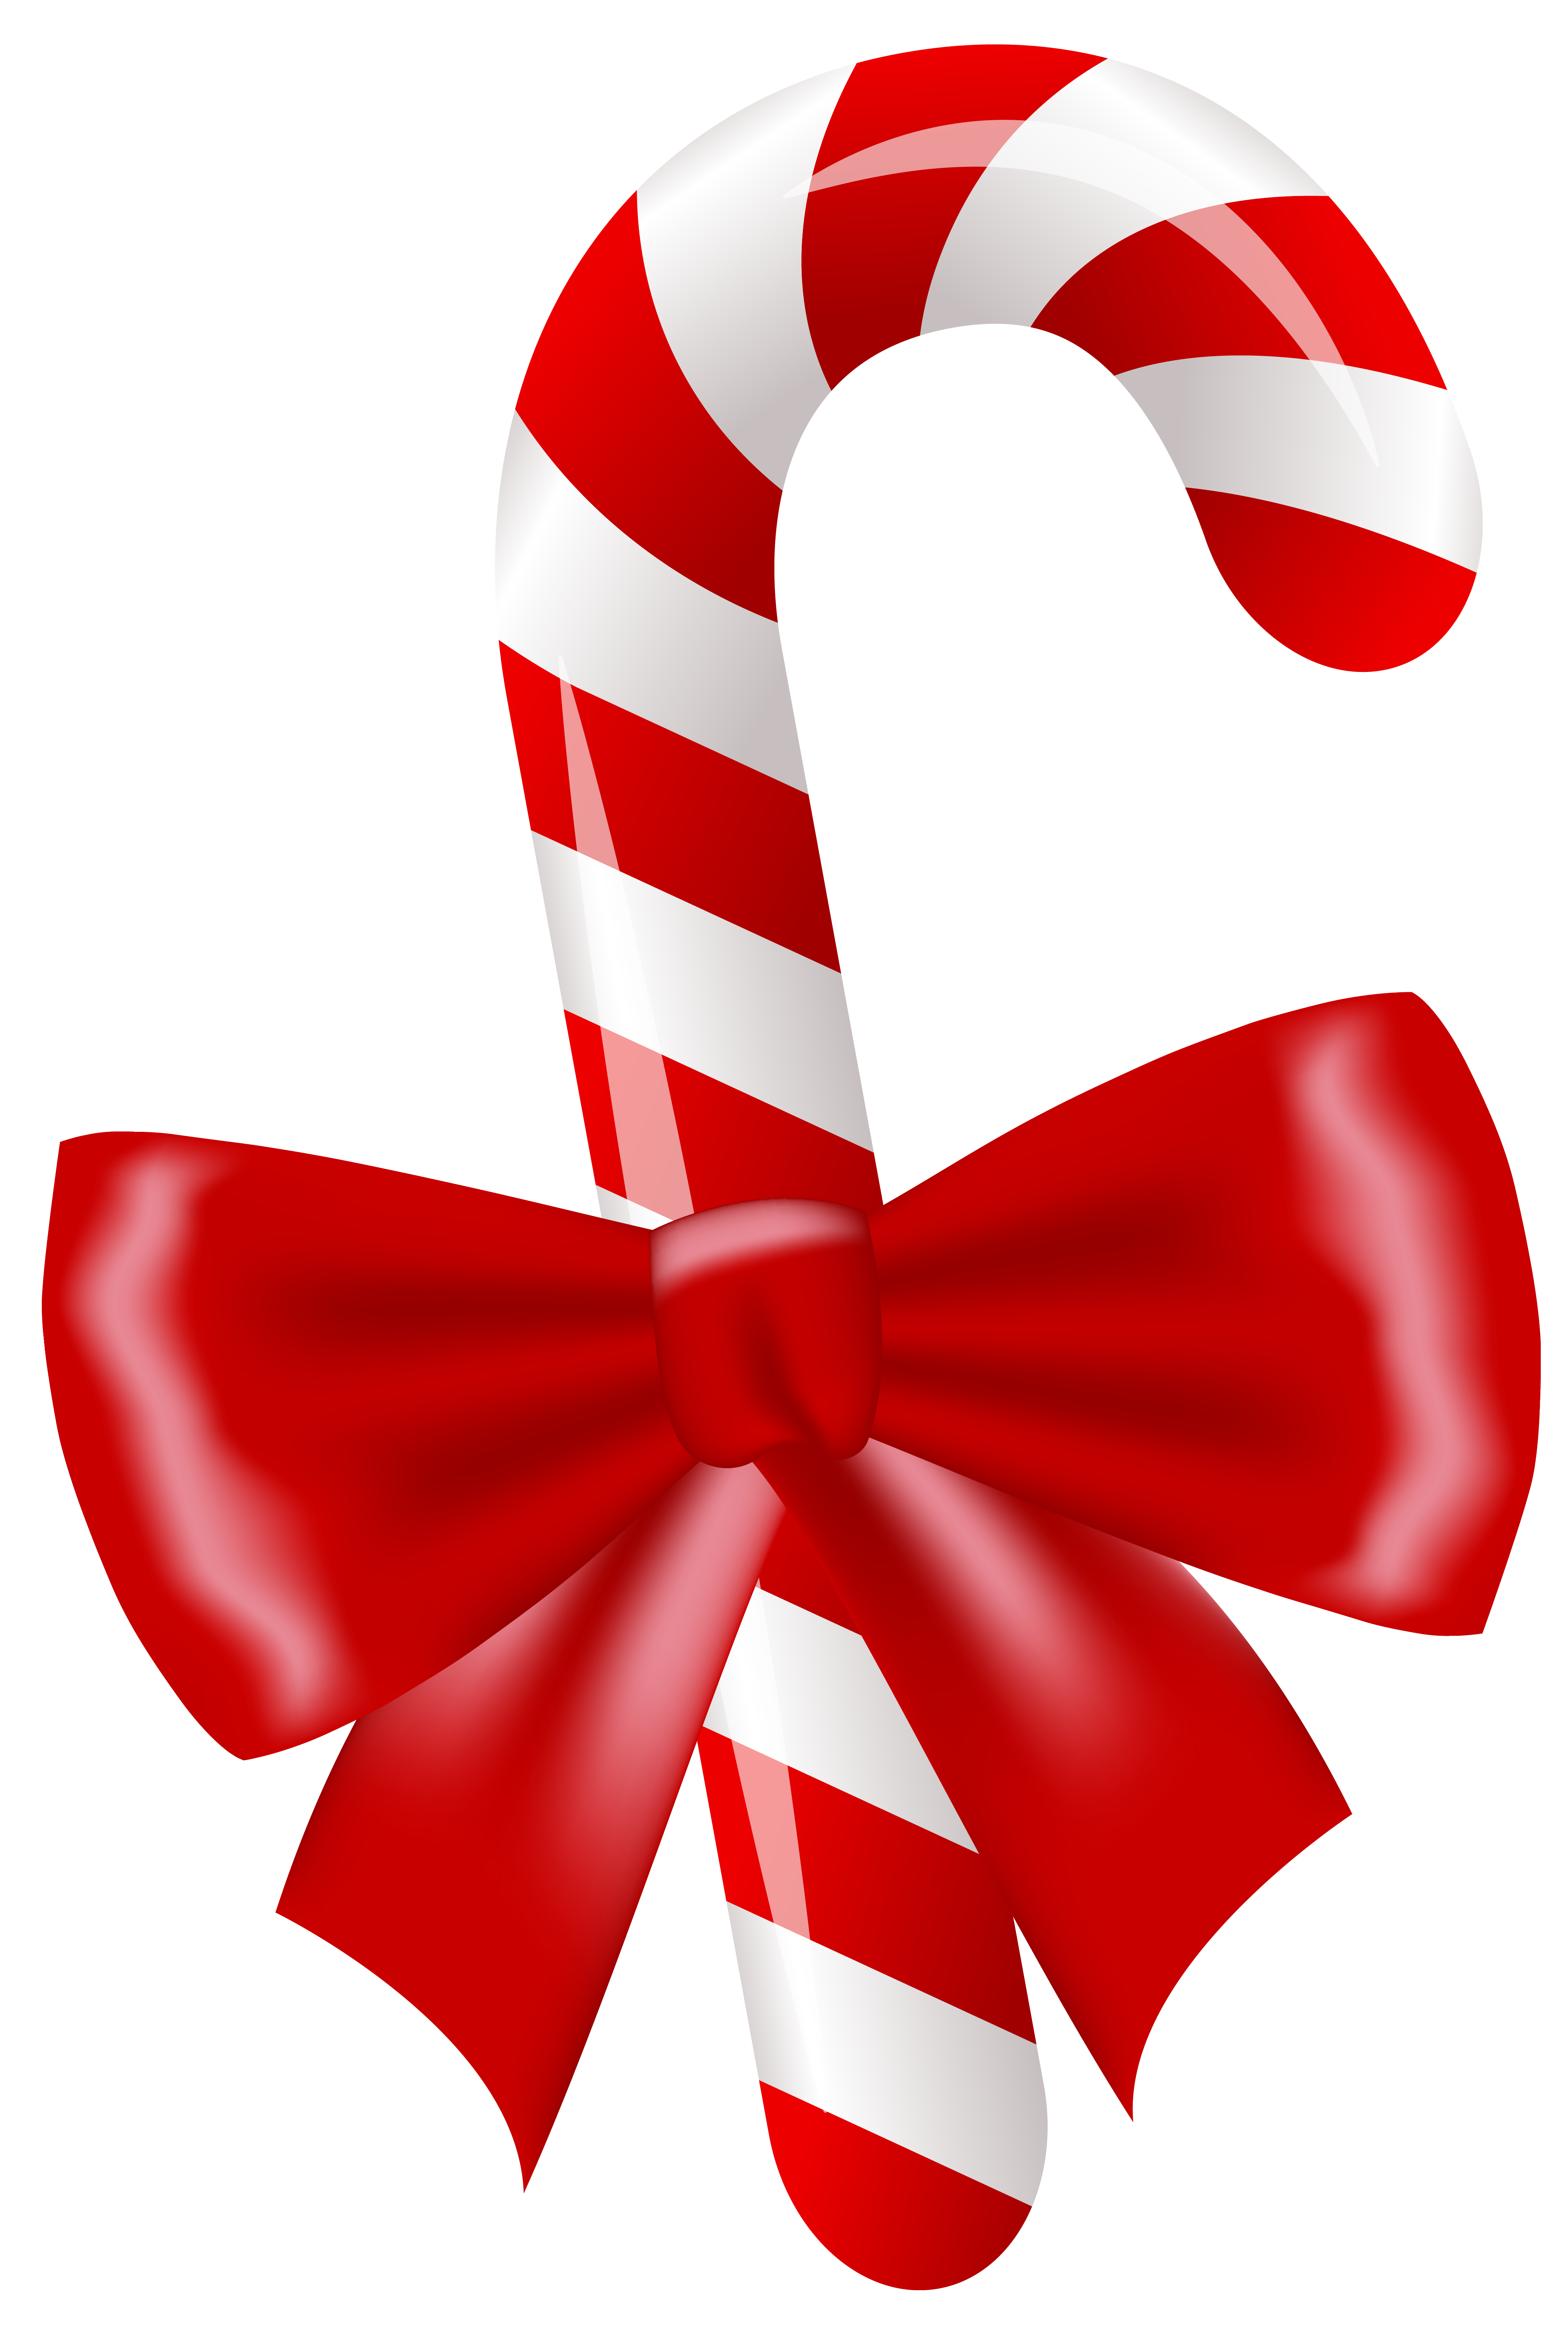 Christmas Candy Cane PNG Clipart Image.